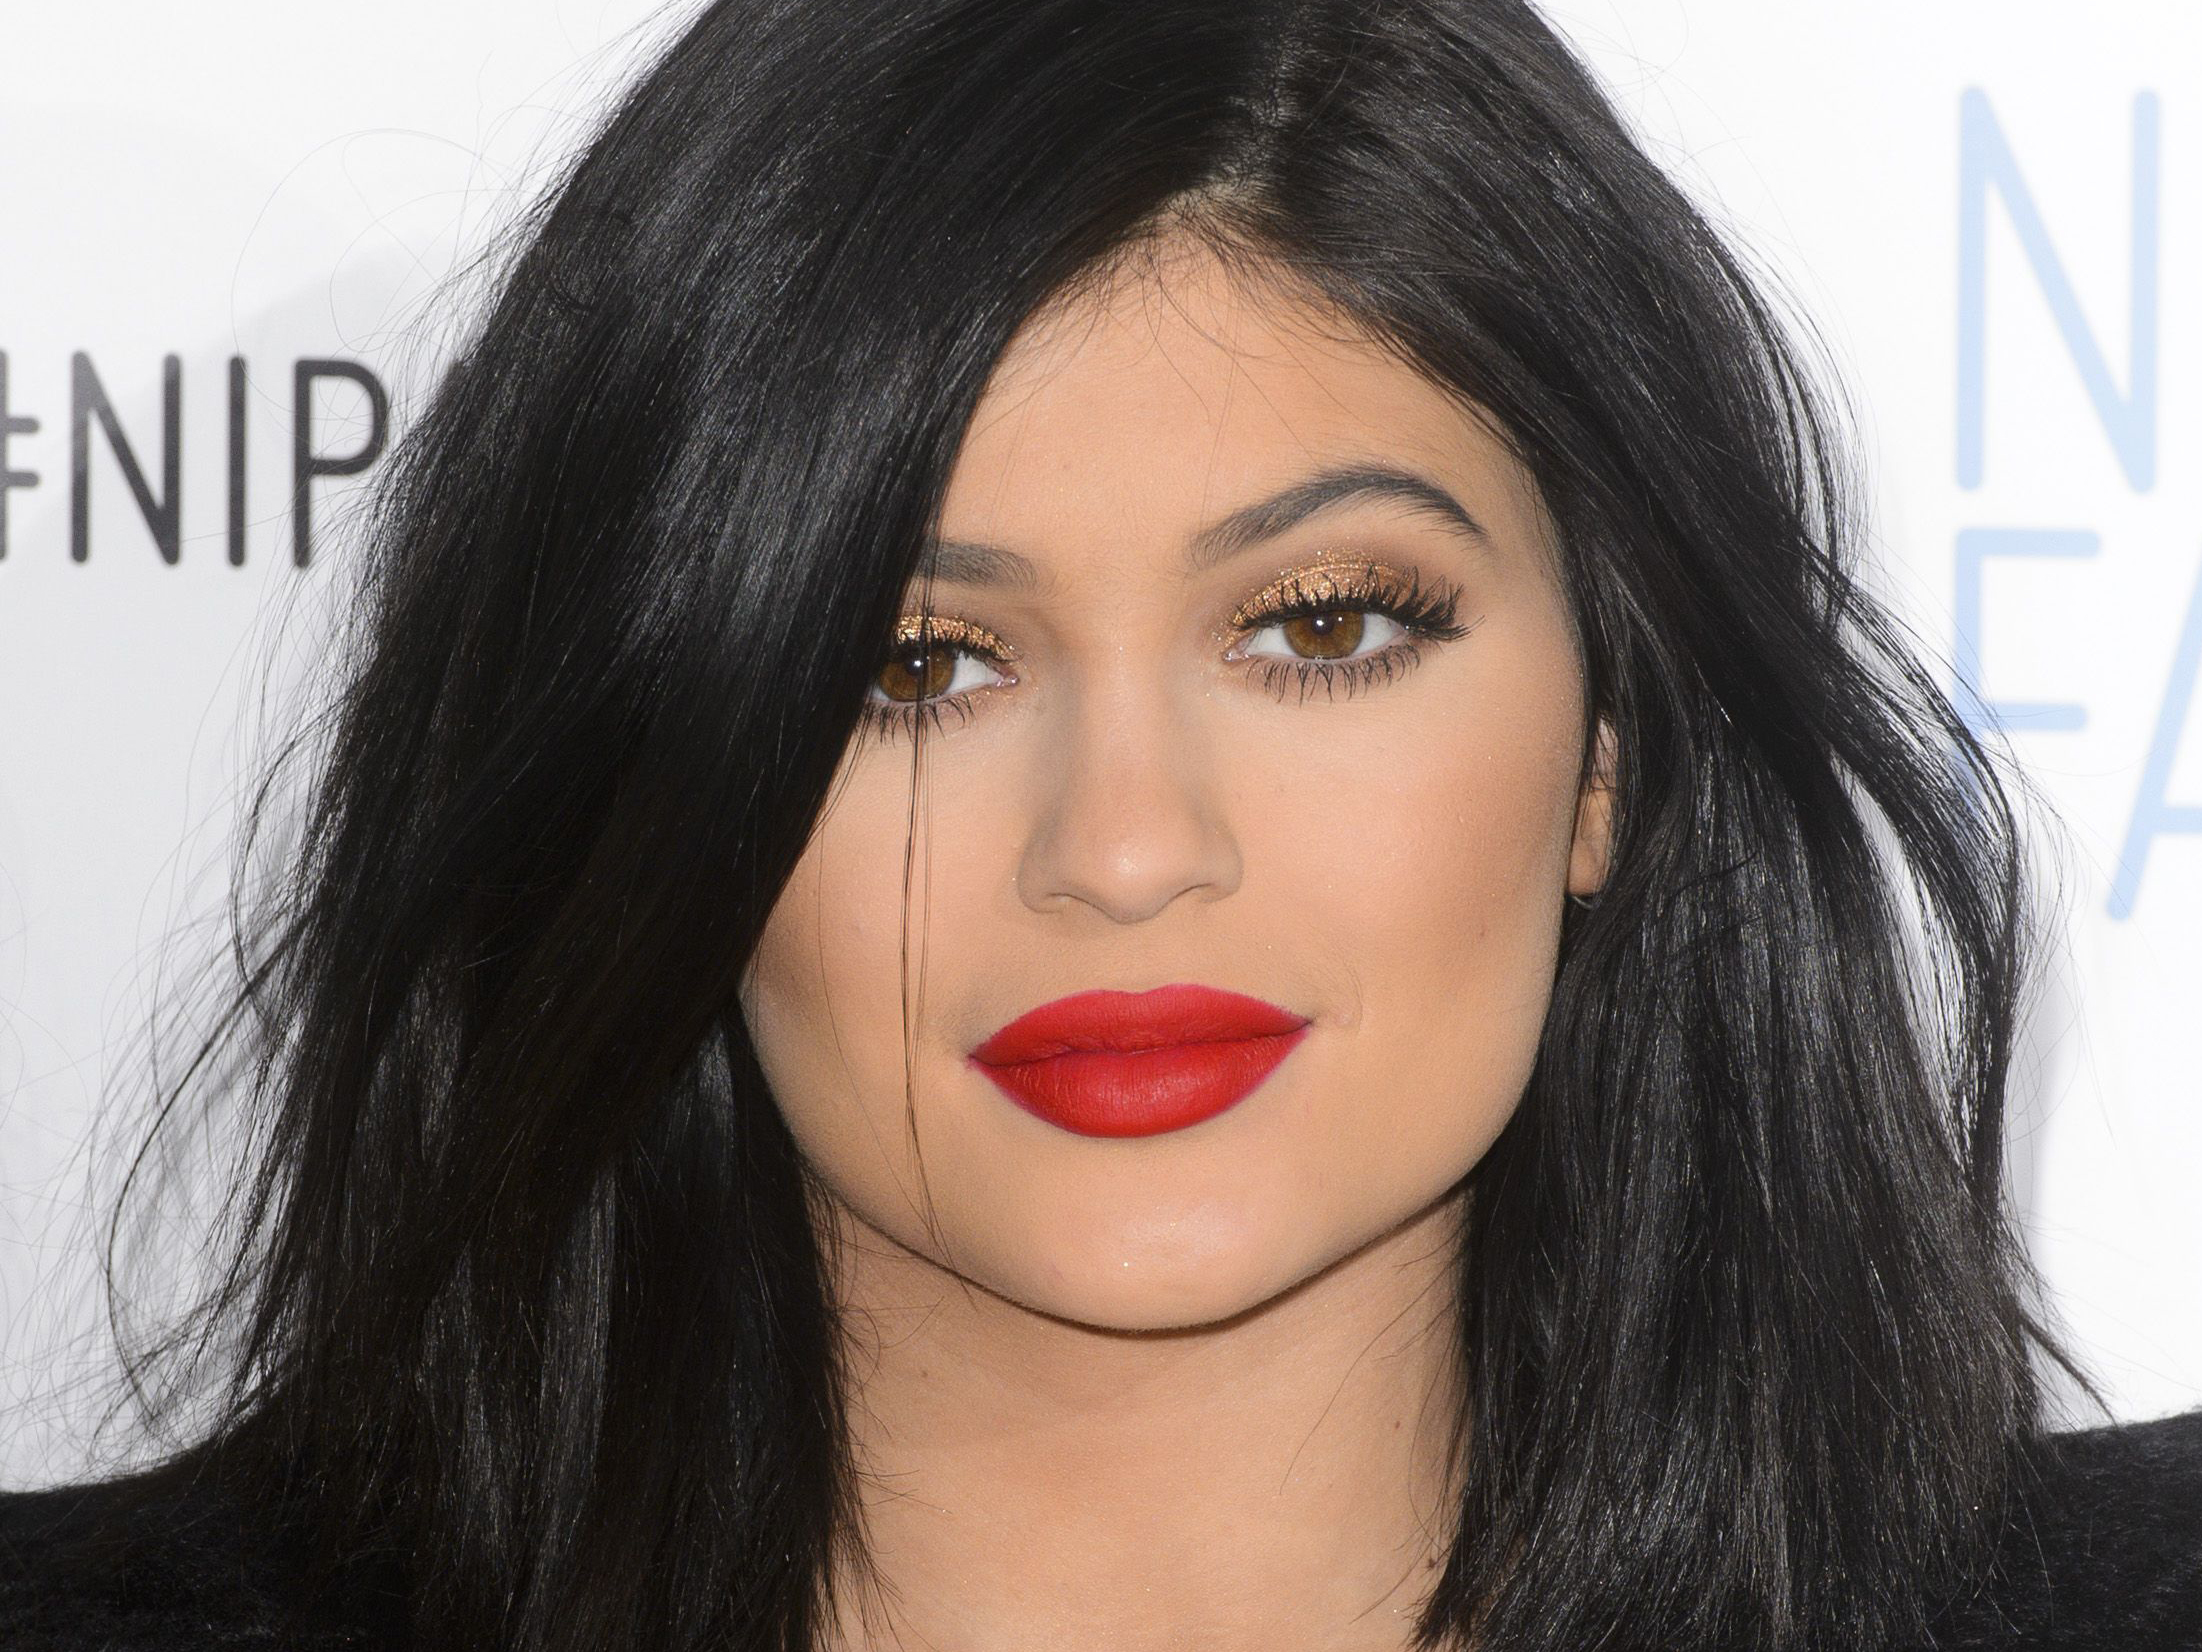 Kylie Jenner Wallpapers